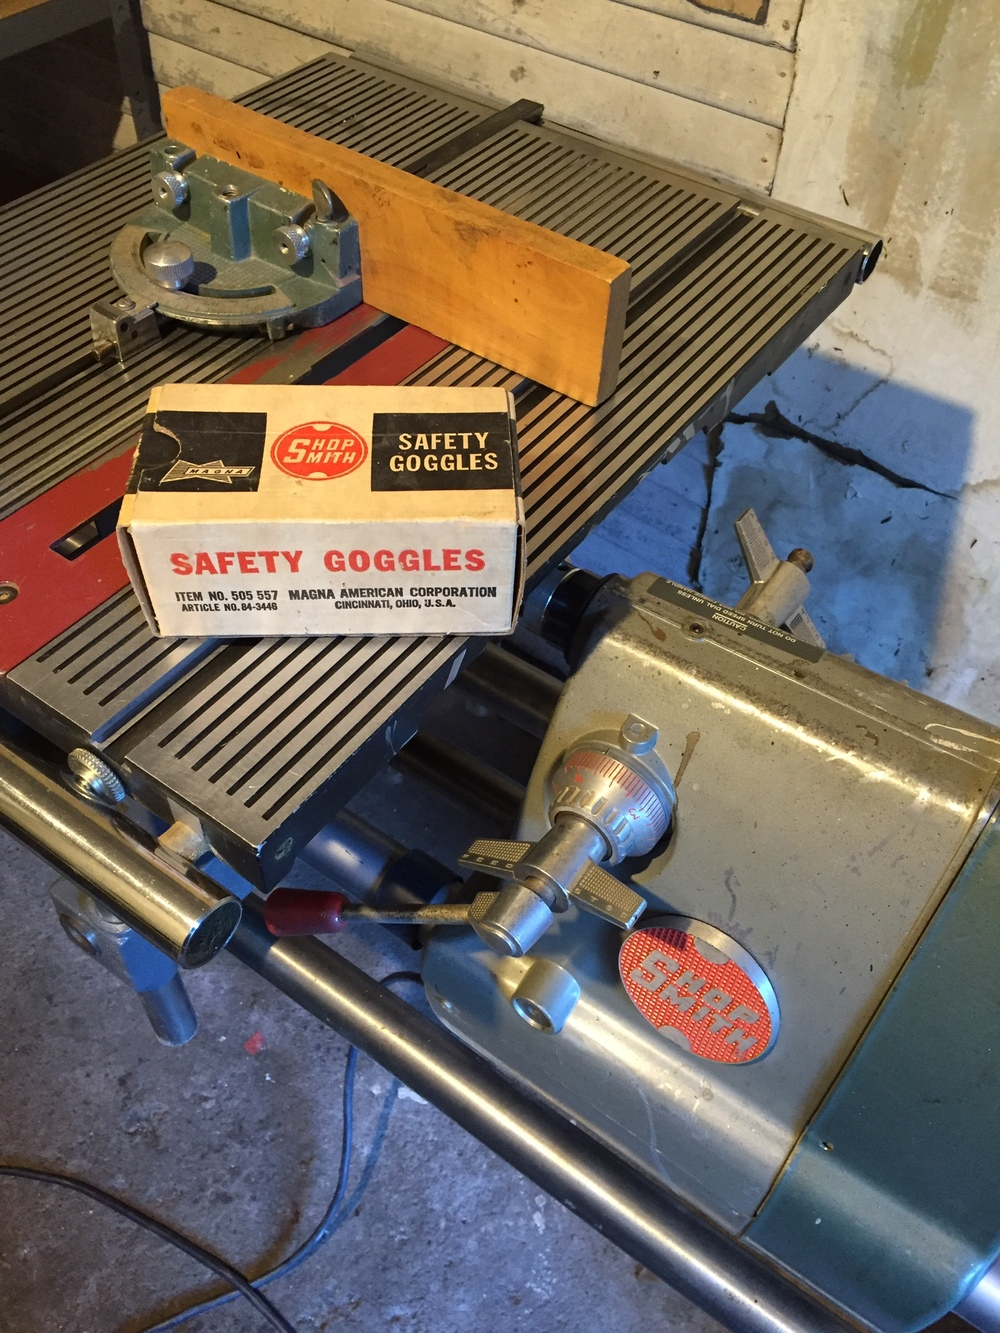 The Shop Smith Saw with the original safety goggles.